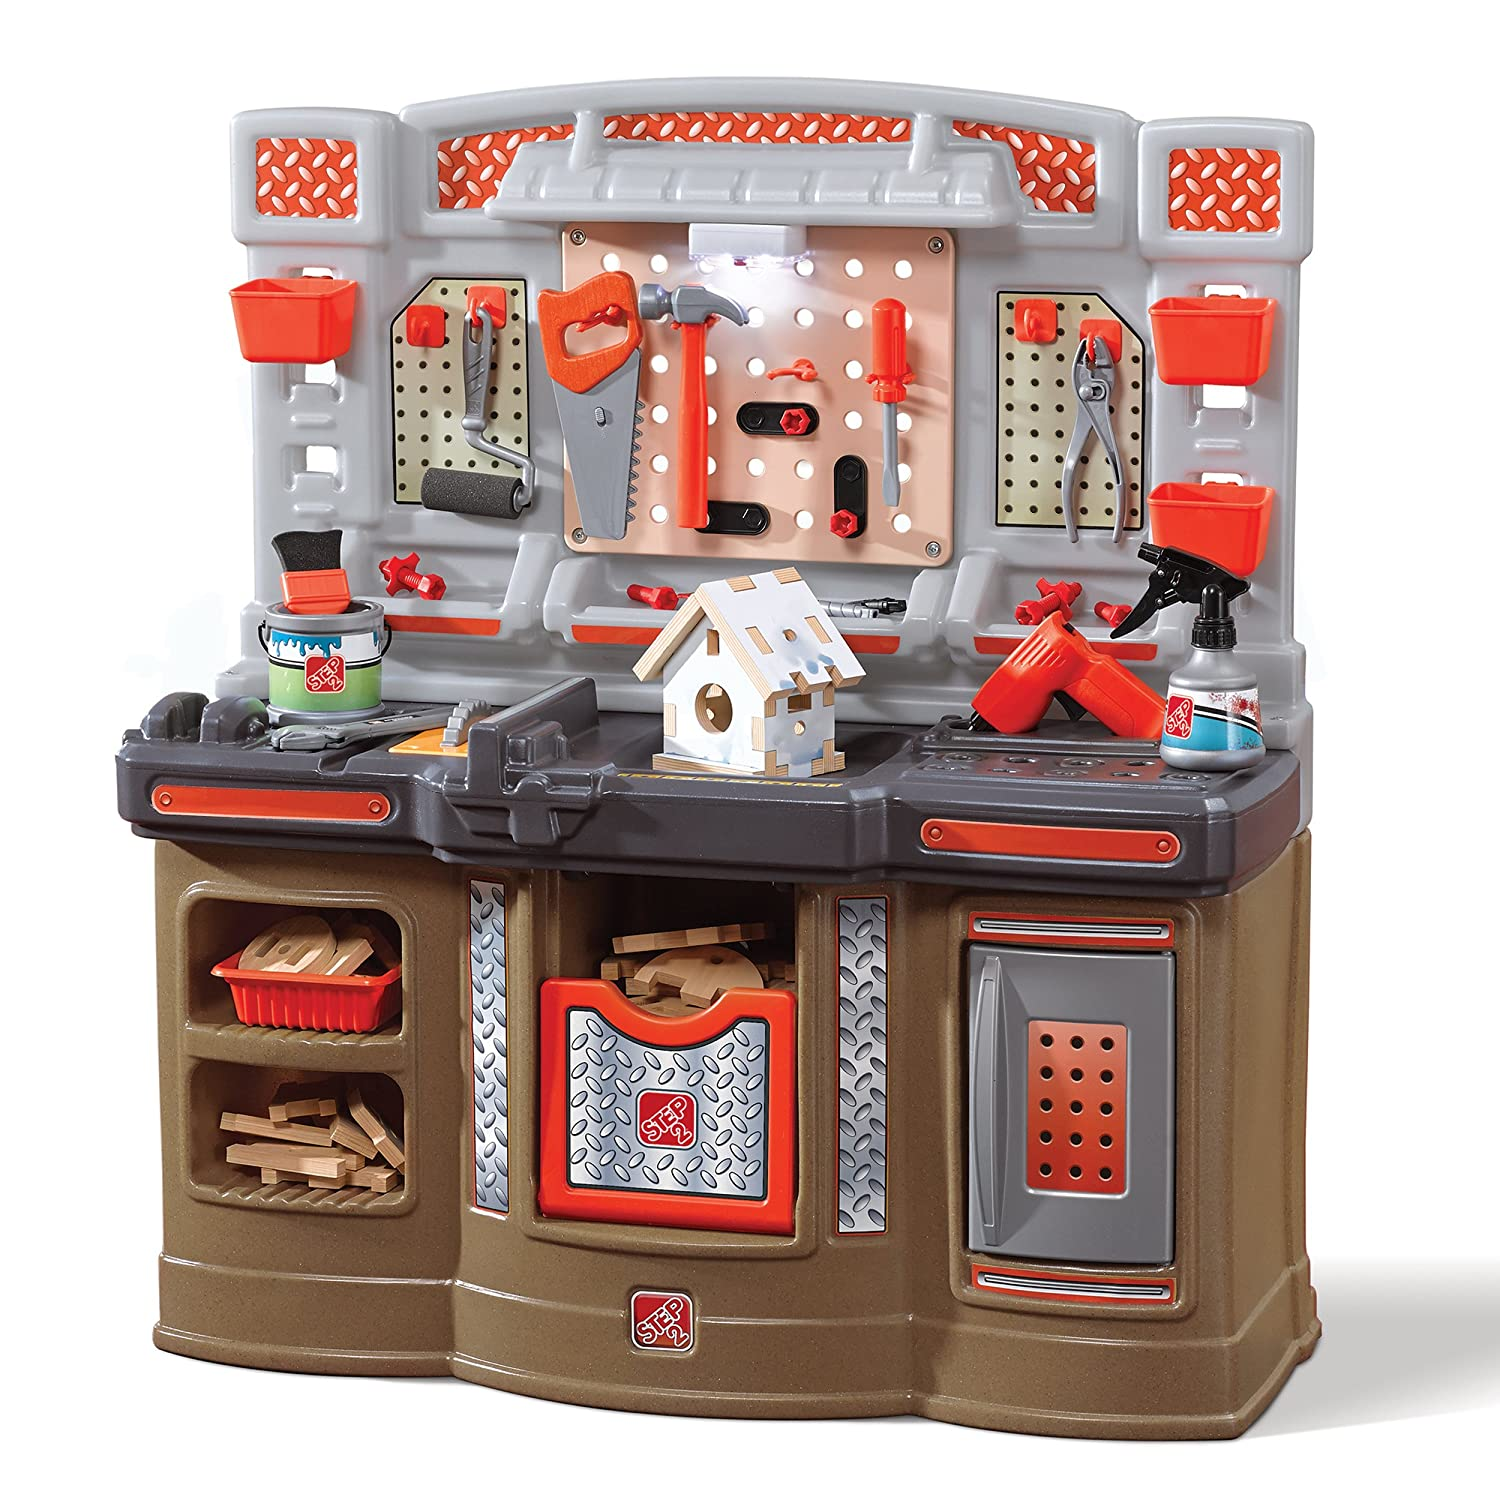 Top 9 Best Kids Toy Tool Bench Reviews in 2019 3